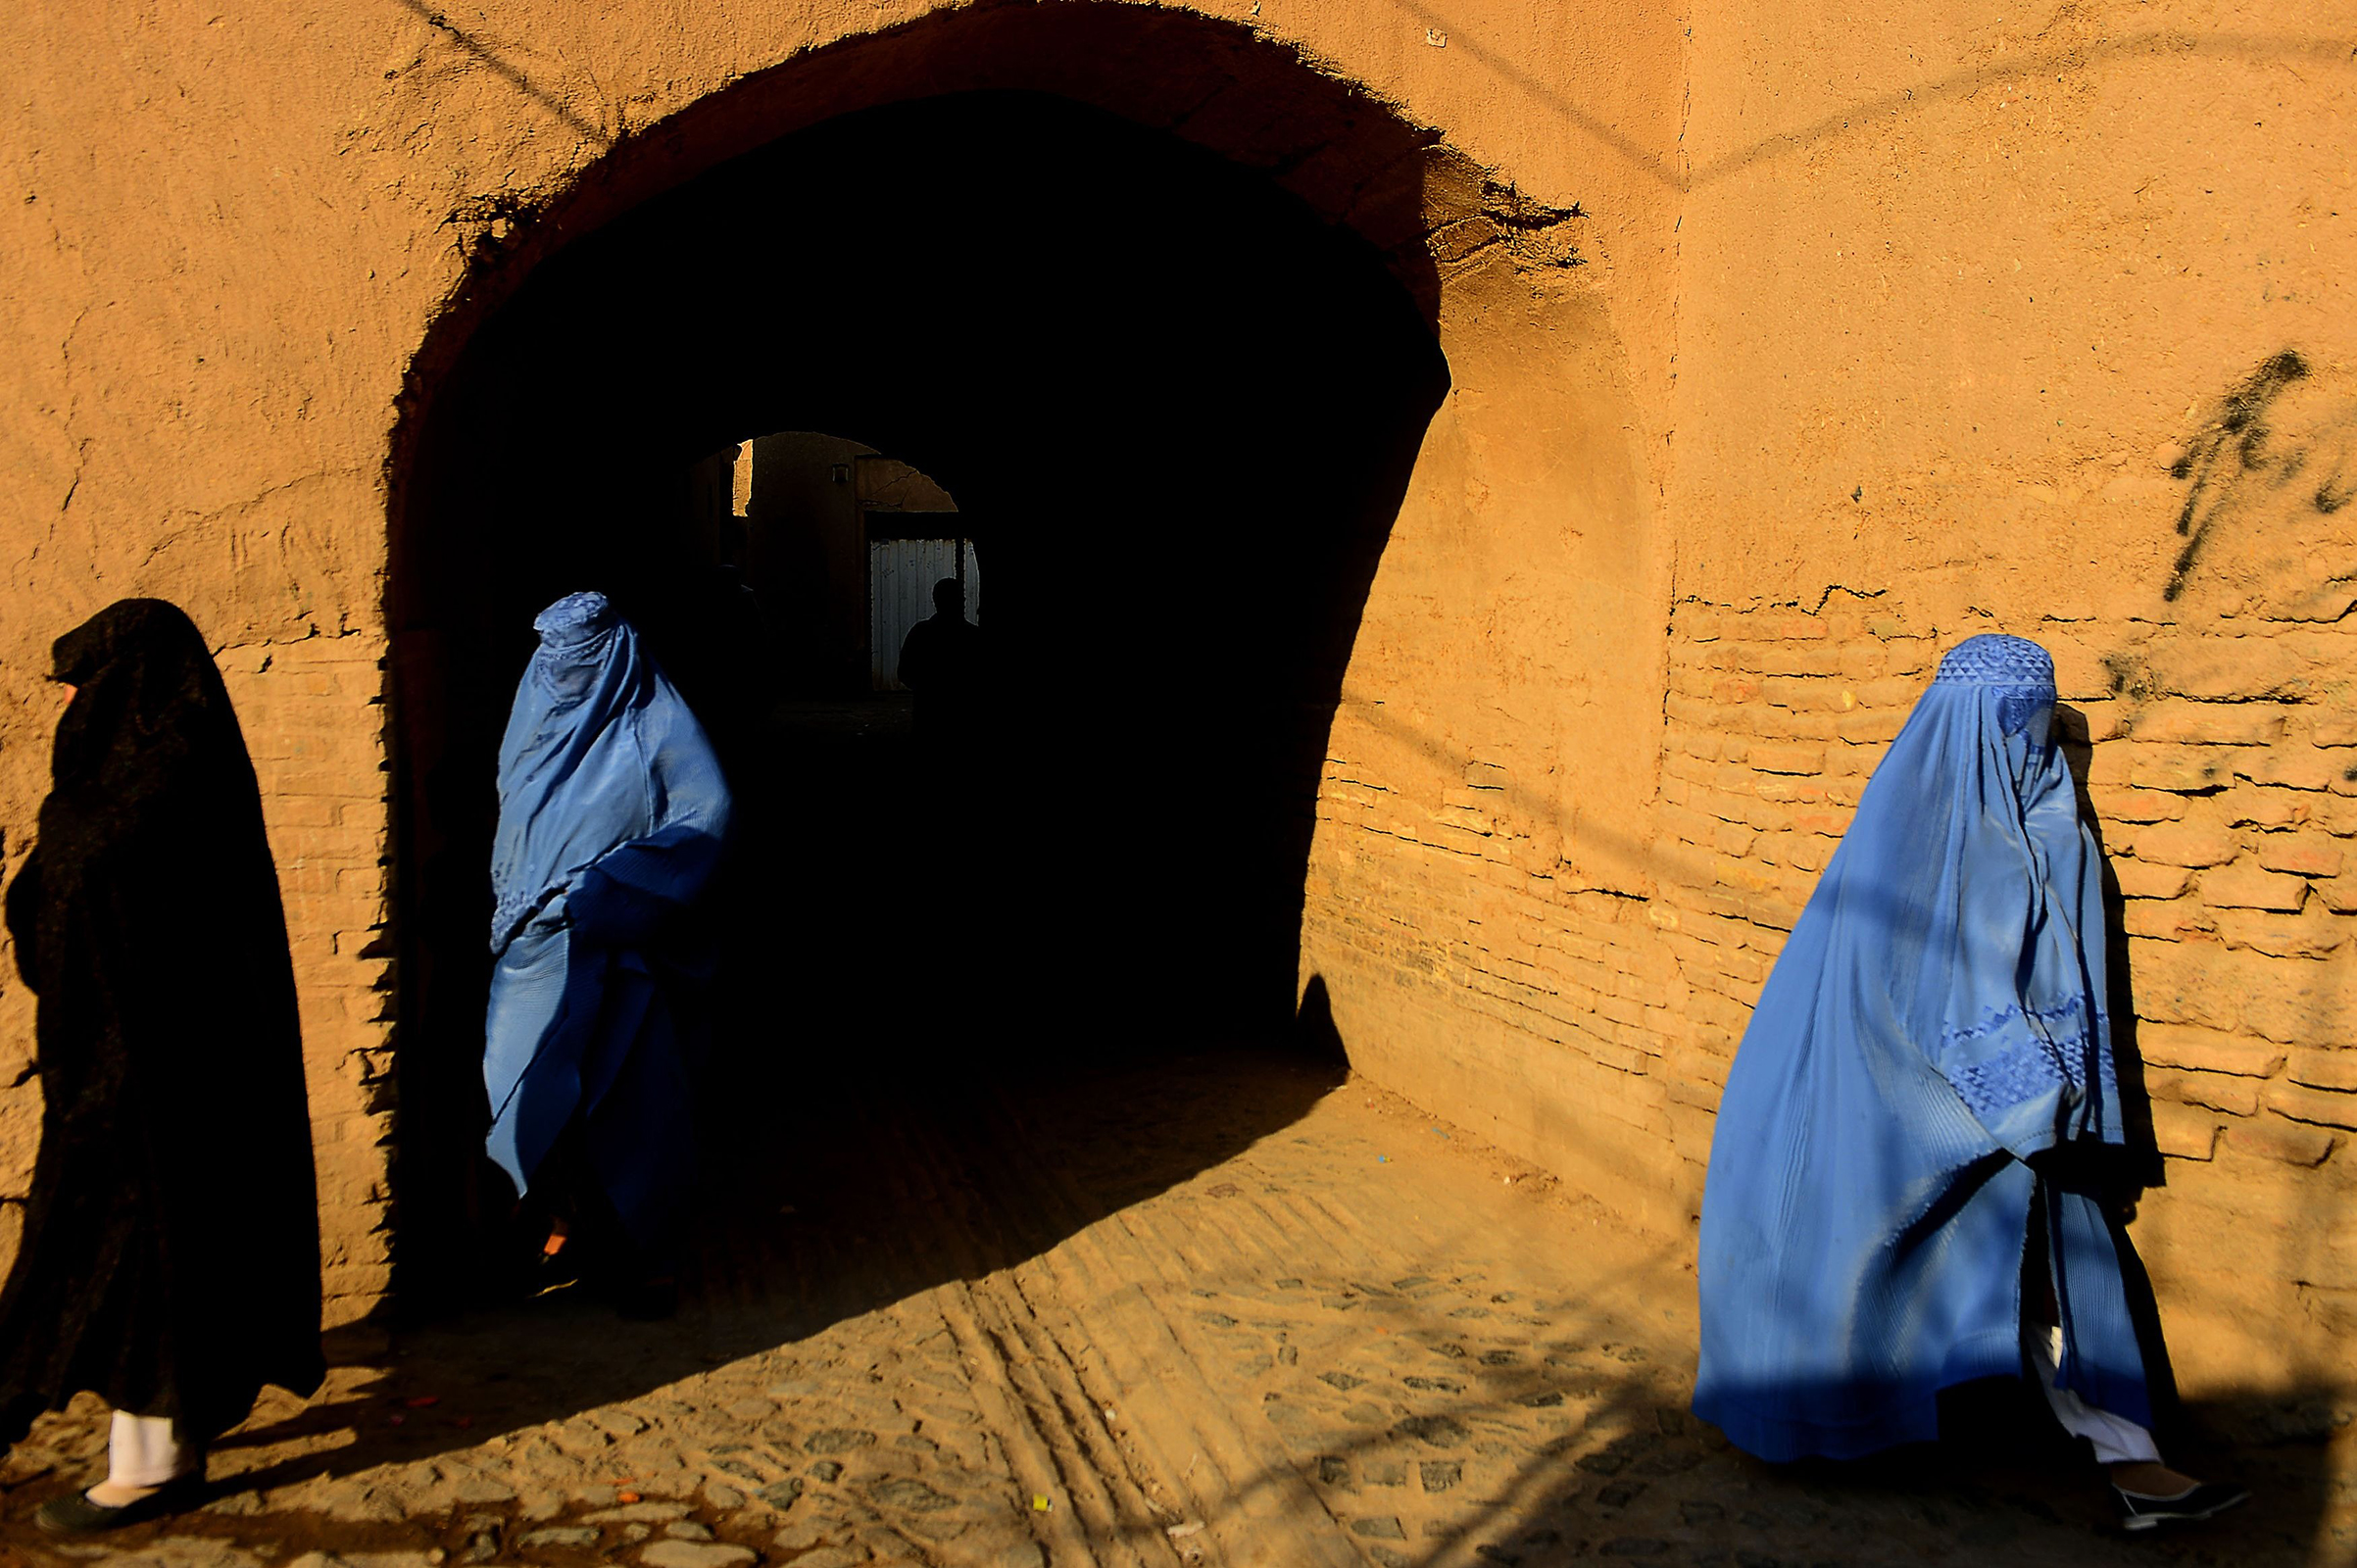 Women in the old section of Herat, Afghanistan, on Jan. 9, 2018